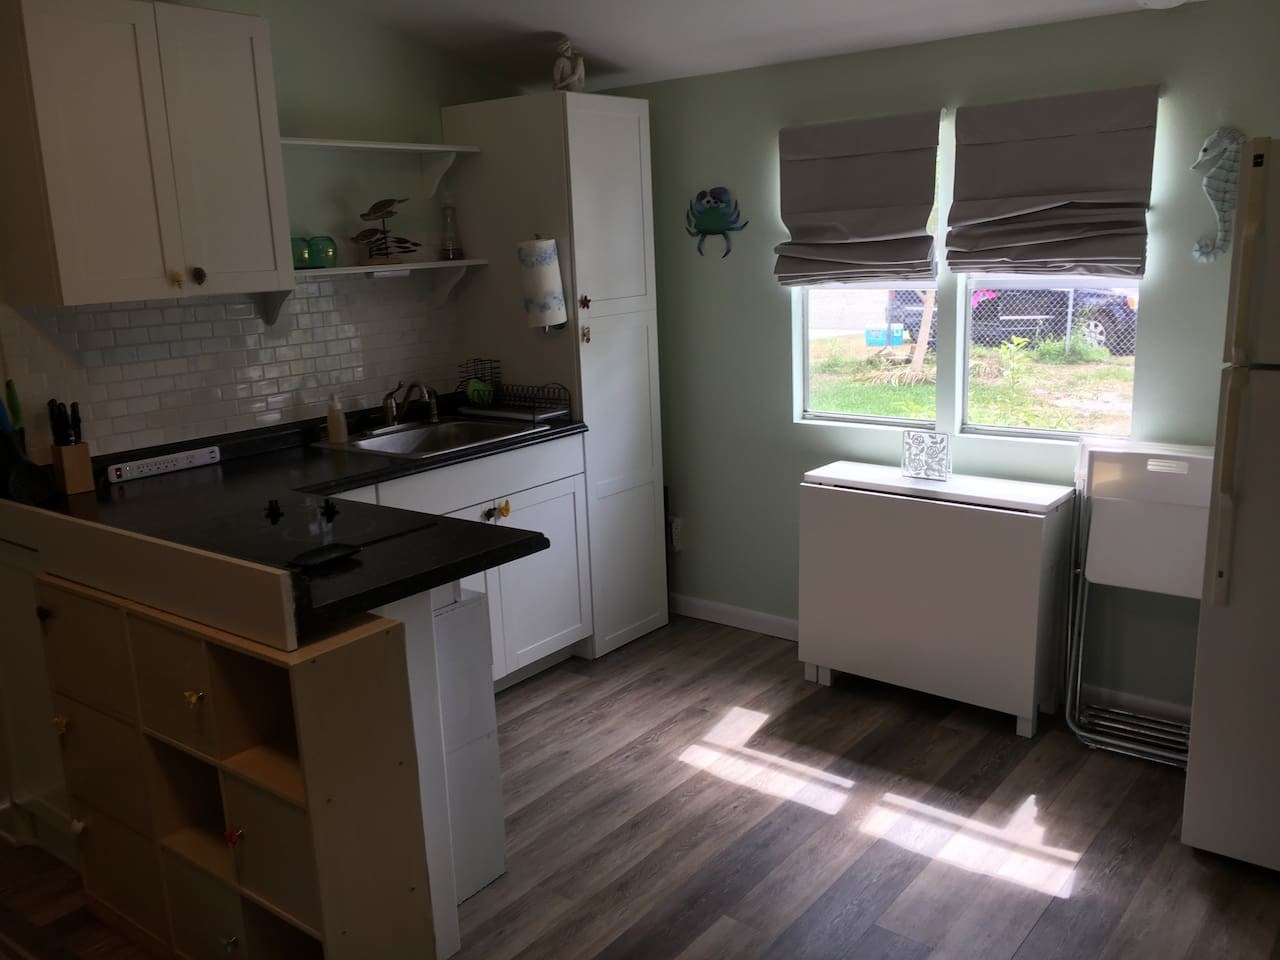 Kitchenette has large sink, full sized fridge, stovetop range, and large portable oven (large enough to fit a whole chicken in). Cooking utensils, cups, silverware and basic spices provided for you.